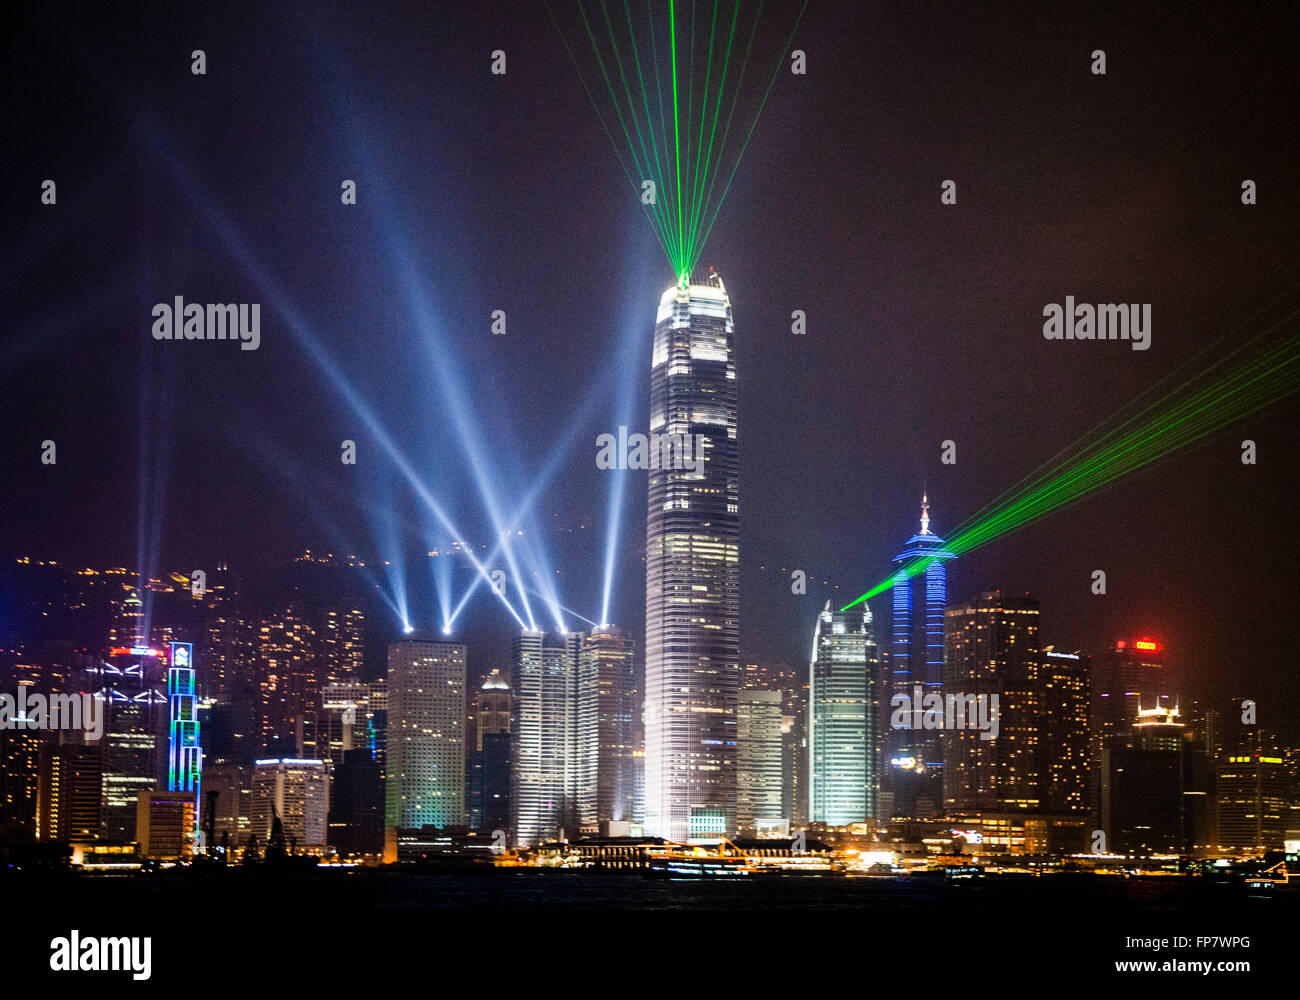 Hong Kong Island skyline seen across Victoria Harbour during the nightly laser show - Stock Image